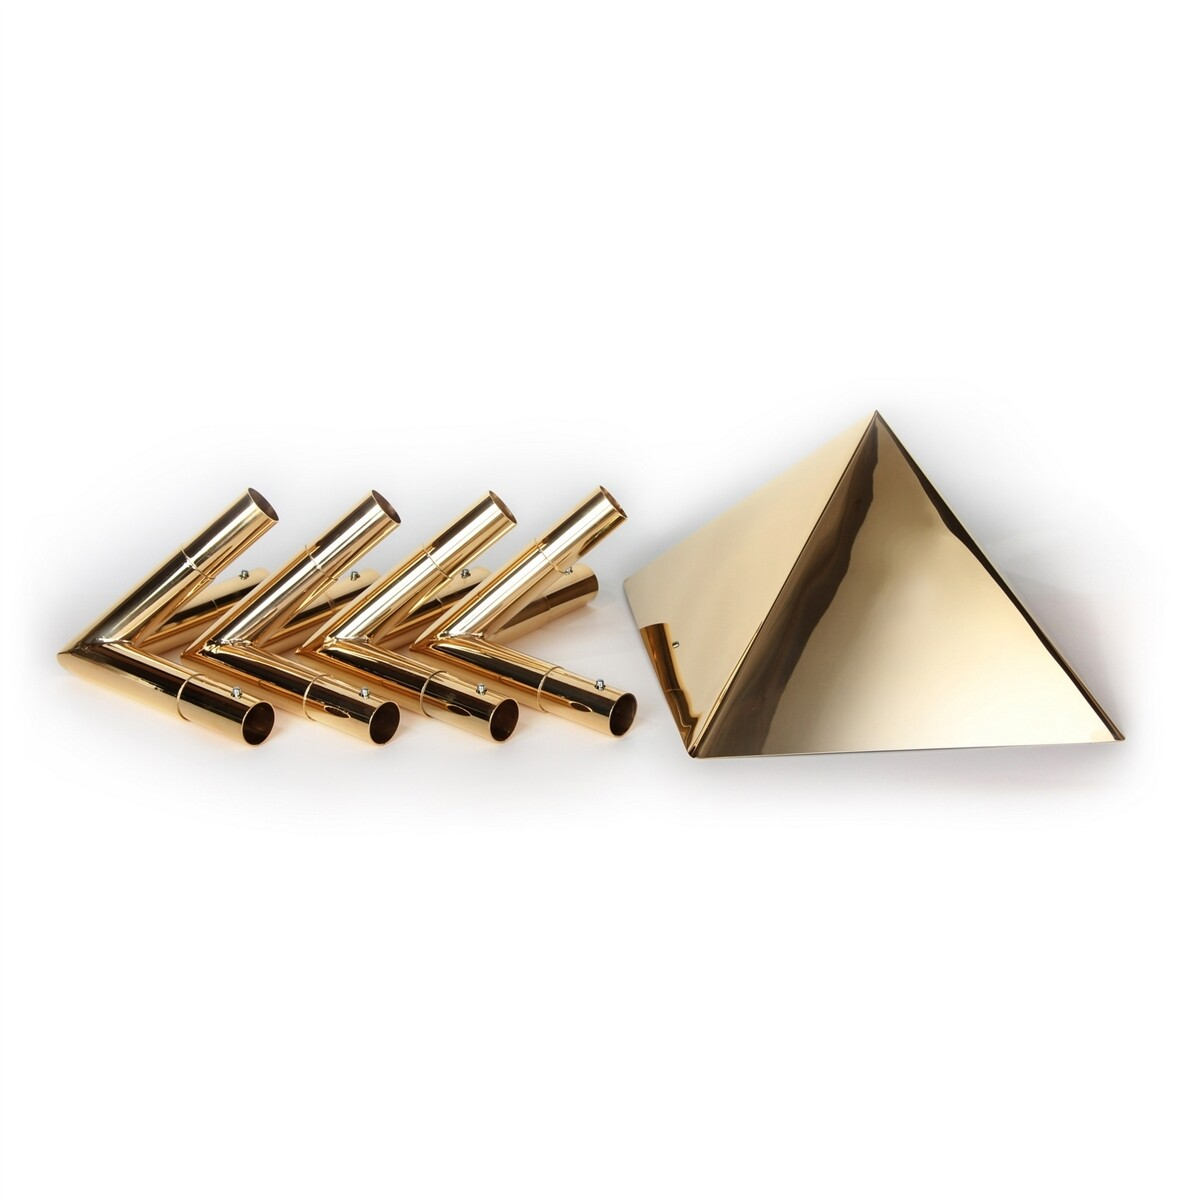 """Meditation Pyramid 24K Gold-plated Connector Kit with 10"""" Capstone - Fits 1 Inch Type M Copper Poles"""